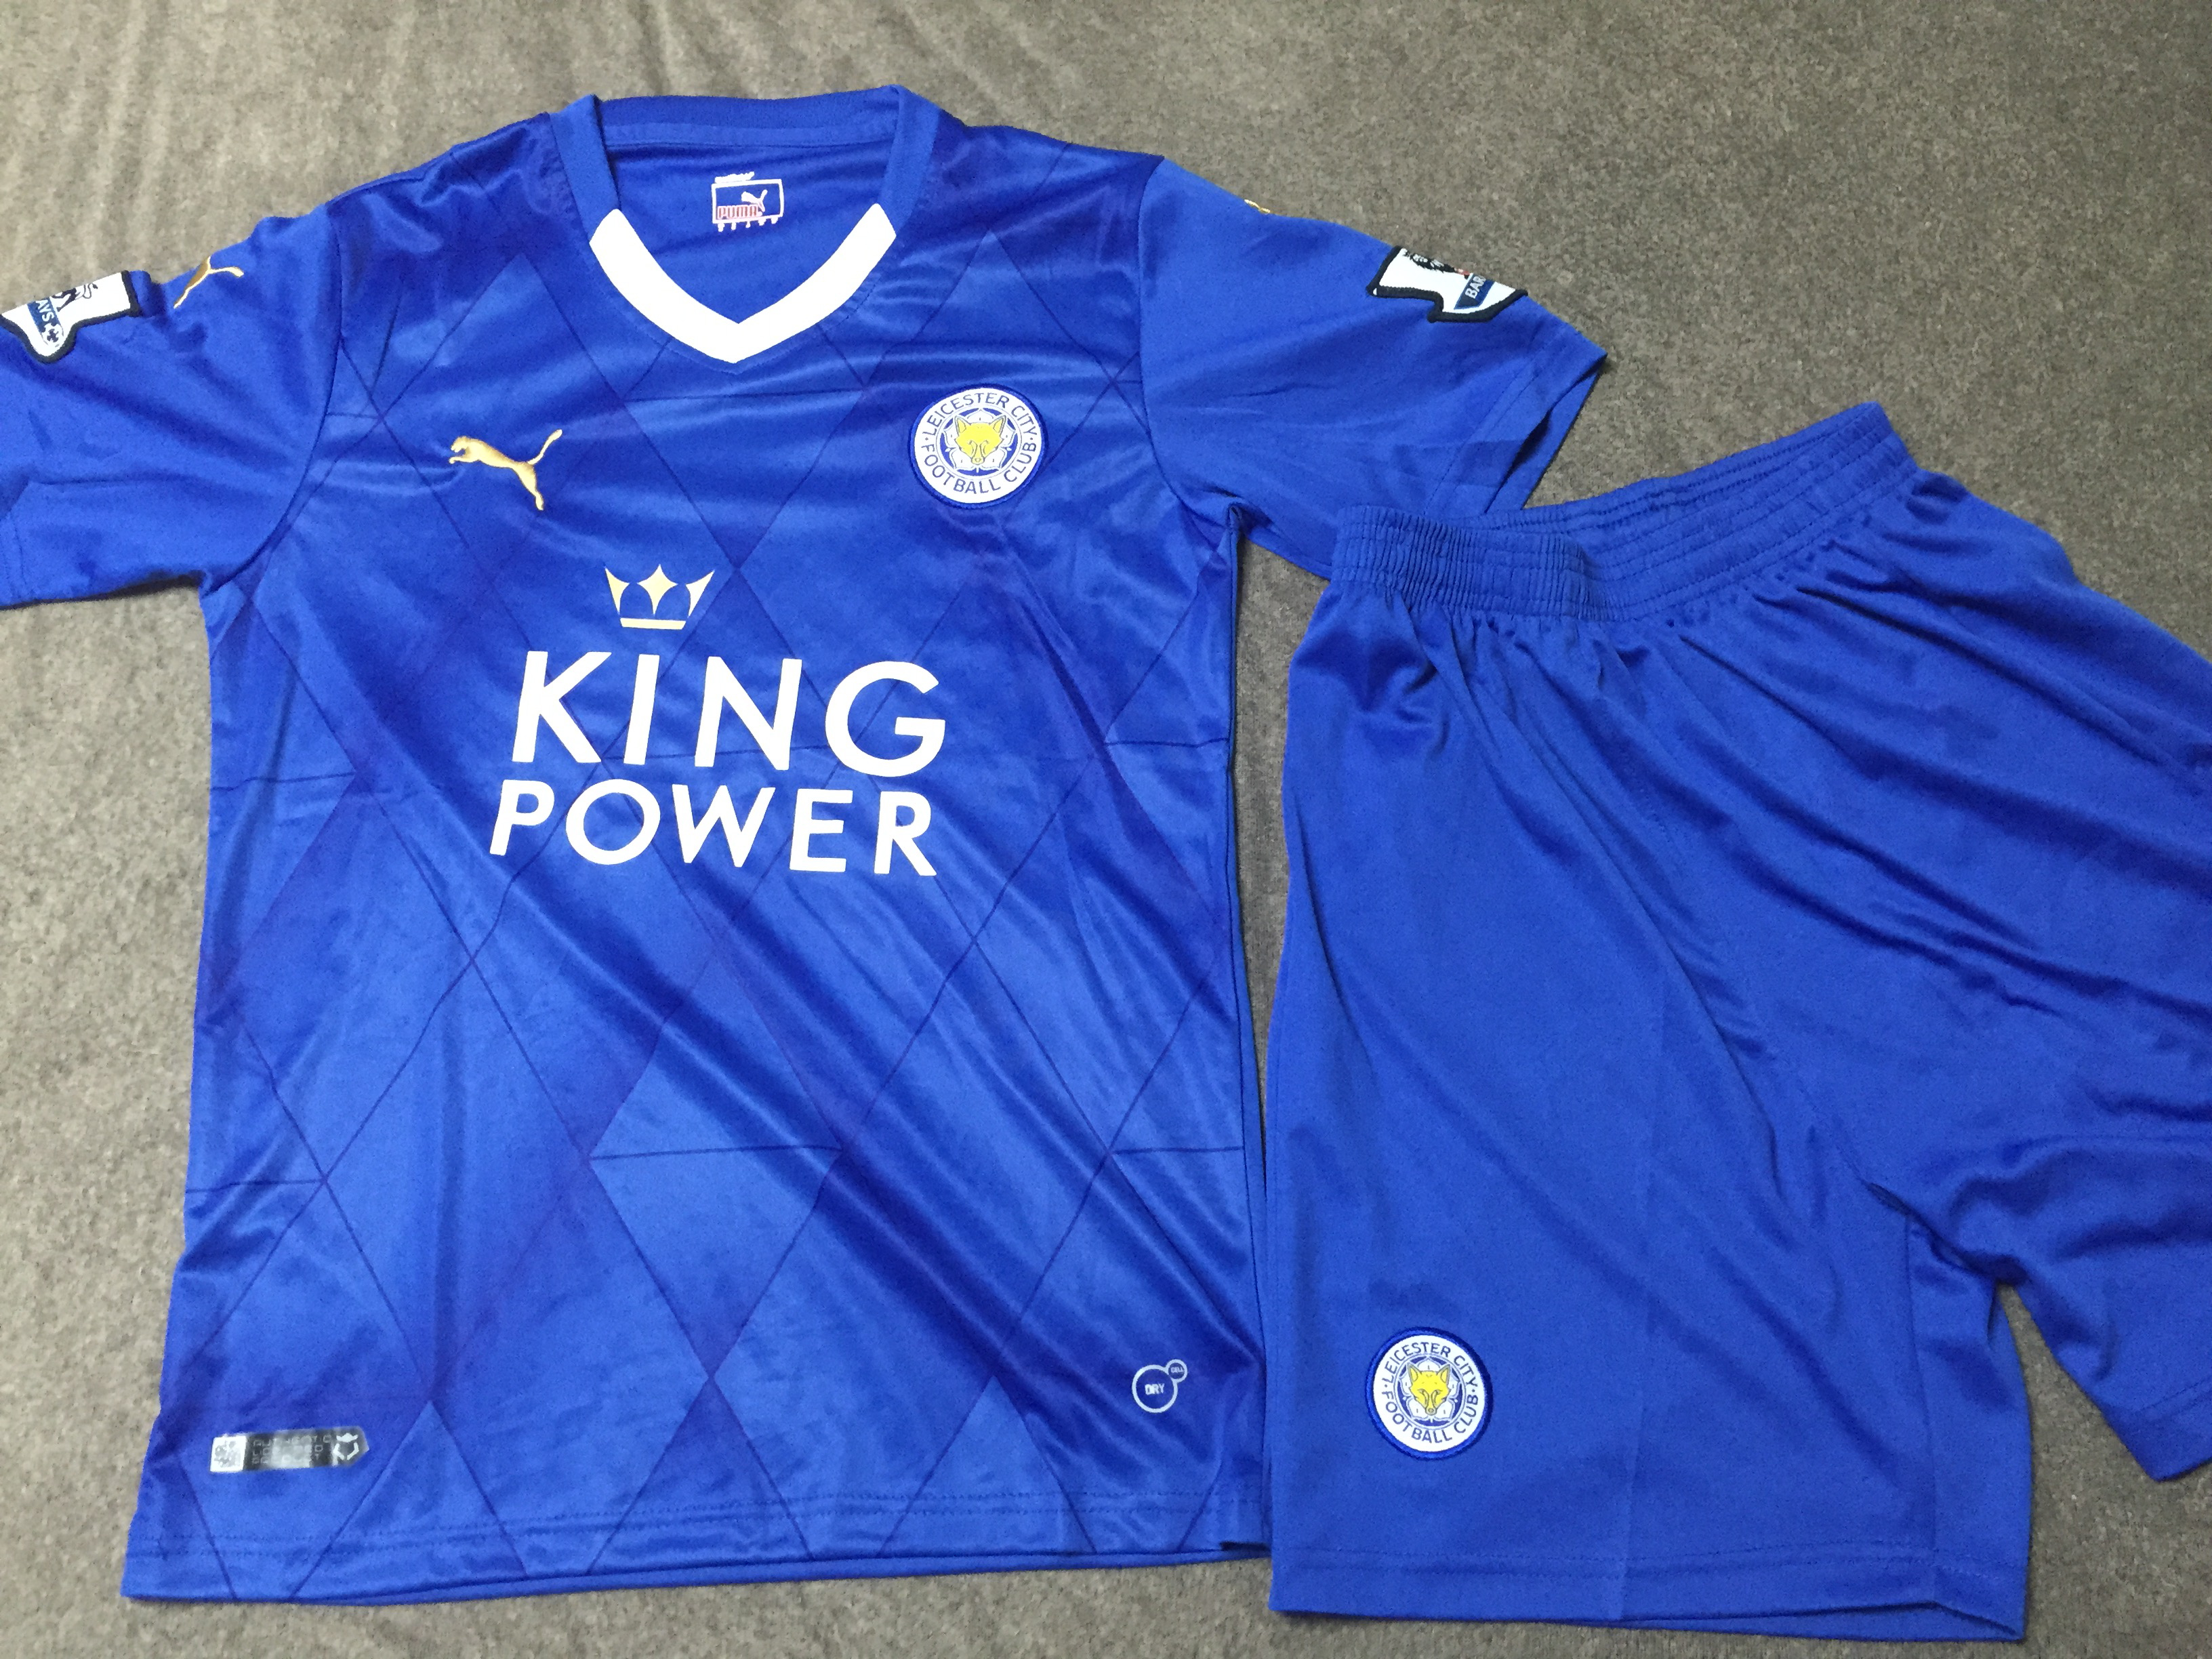 1db1d6541 ... far superior gallery of Leicester City match worn shirts, take a look  at the incredible collection of a guy called Rob at  www.leicestercitymatchworn.com